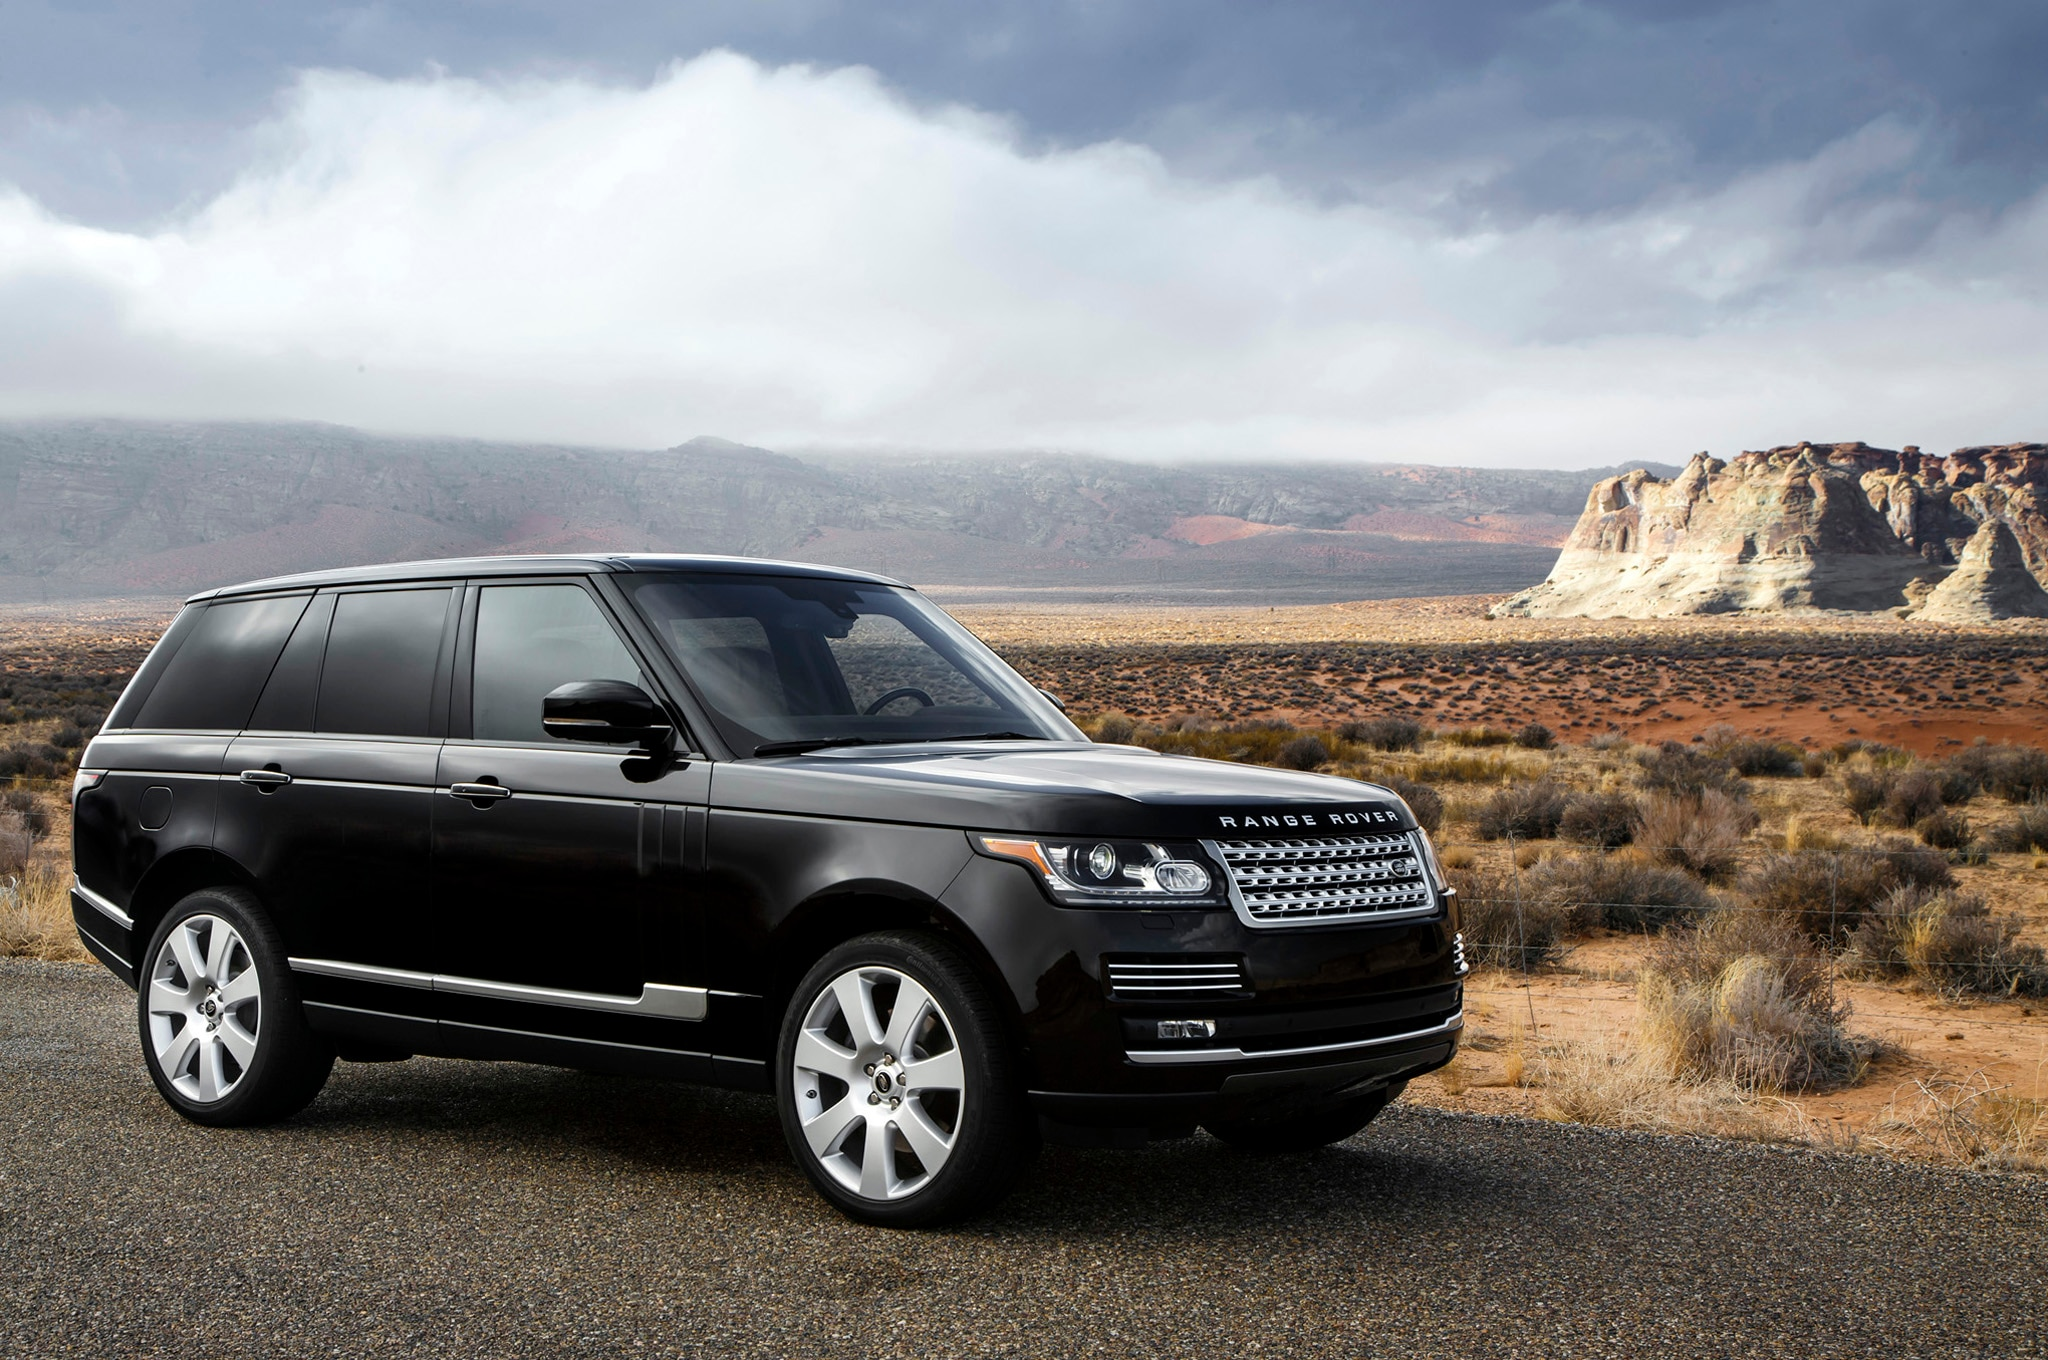 land rover will sell 2013 range rover hybrid in european markets. Black Bedroom Furniture Sets. Home Design Ideas